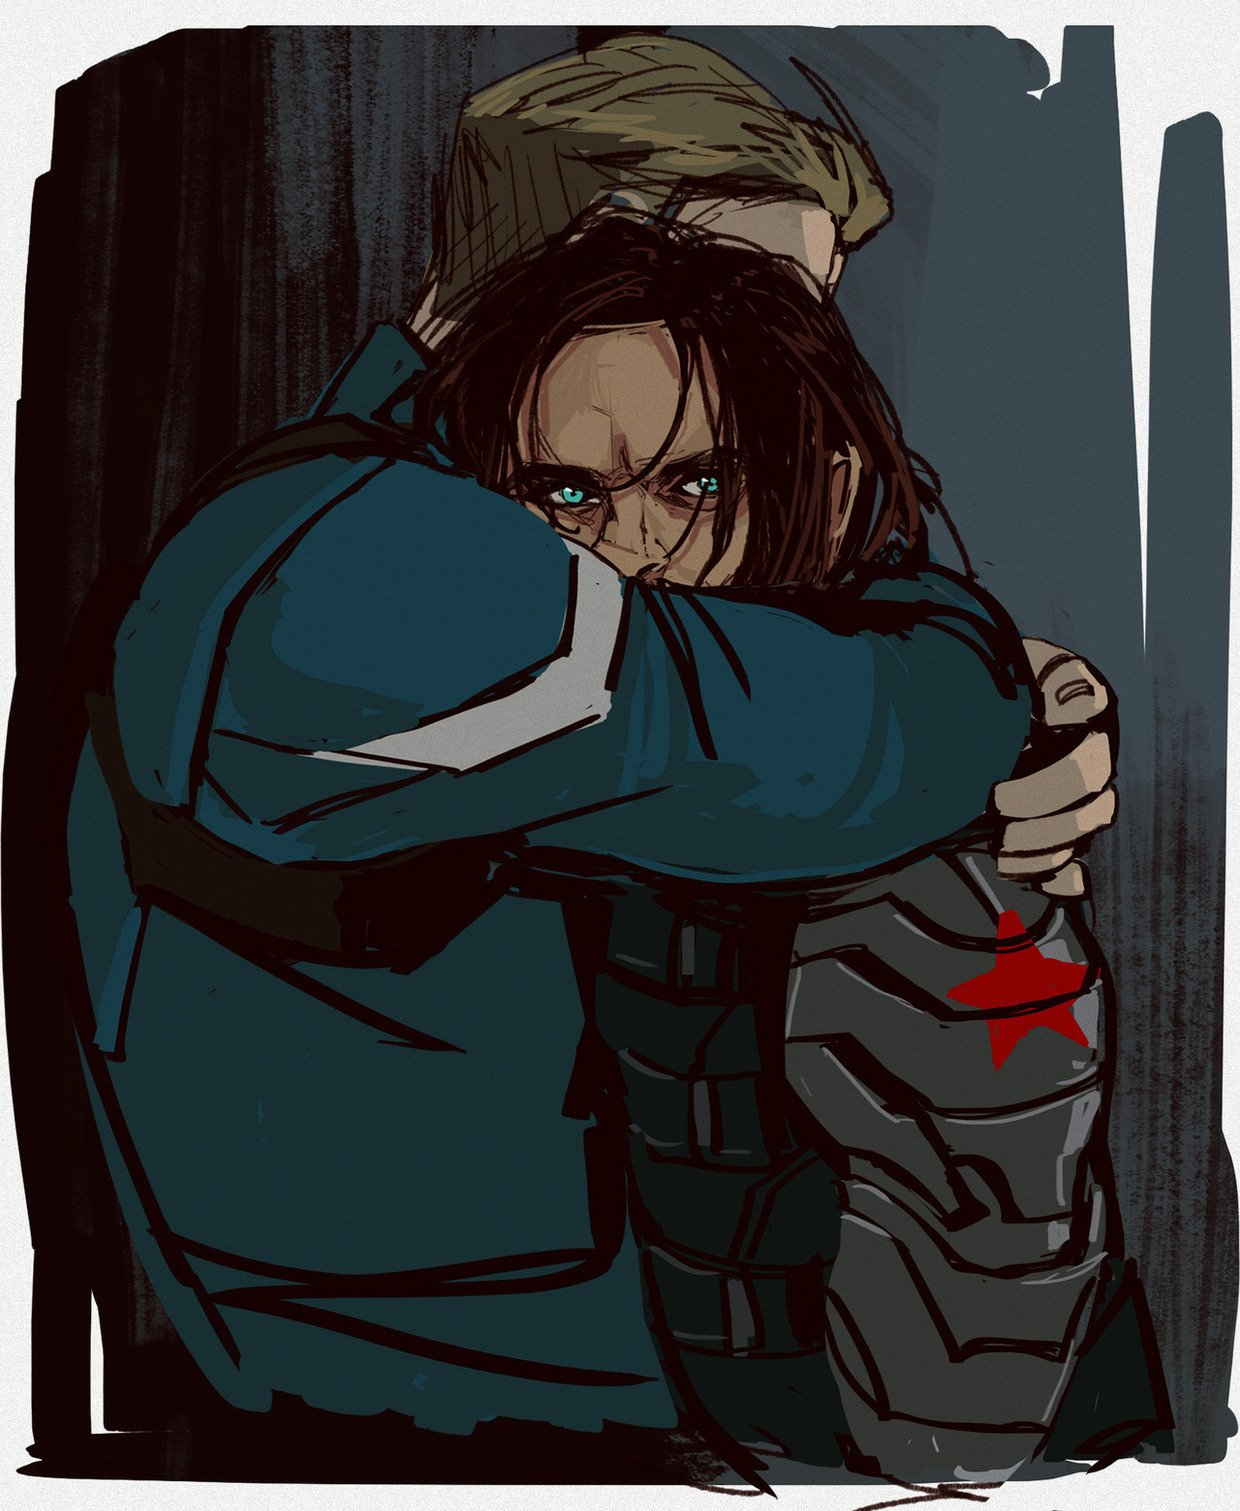 RT @Orientalld: Haven't post this here. I think (You should apologize if I double or triple post, coz I dont remember what where and when I post)  #stucky  #SteveRogers  #BuckyBarnes https://t.co/8UhfBCKsFs